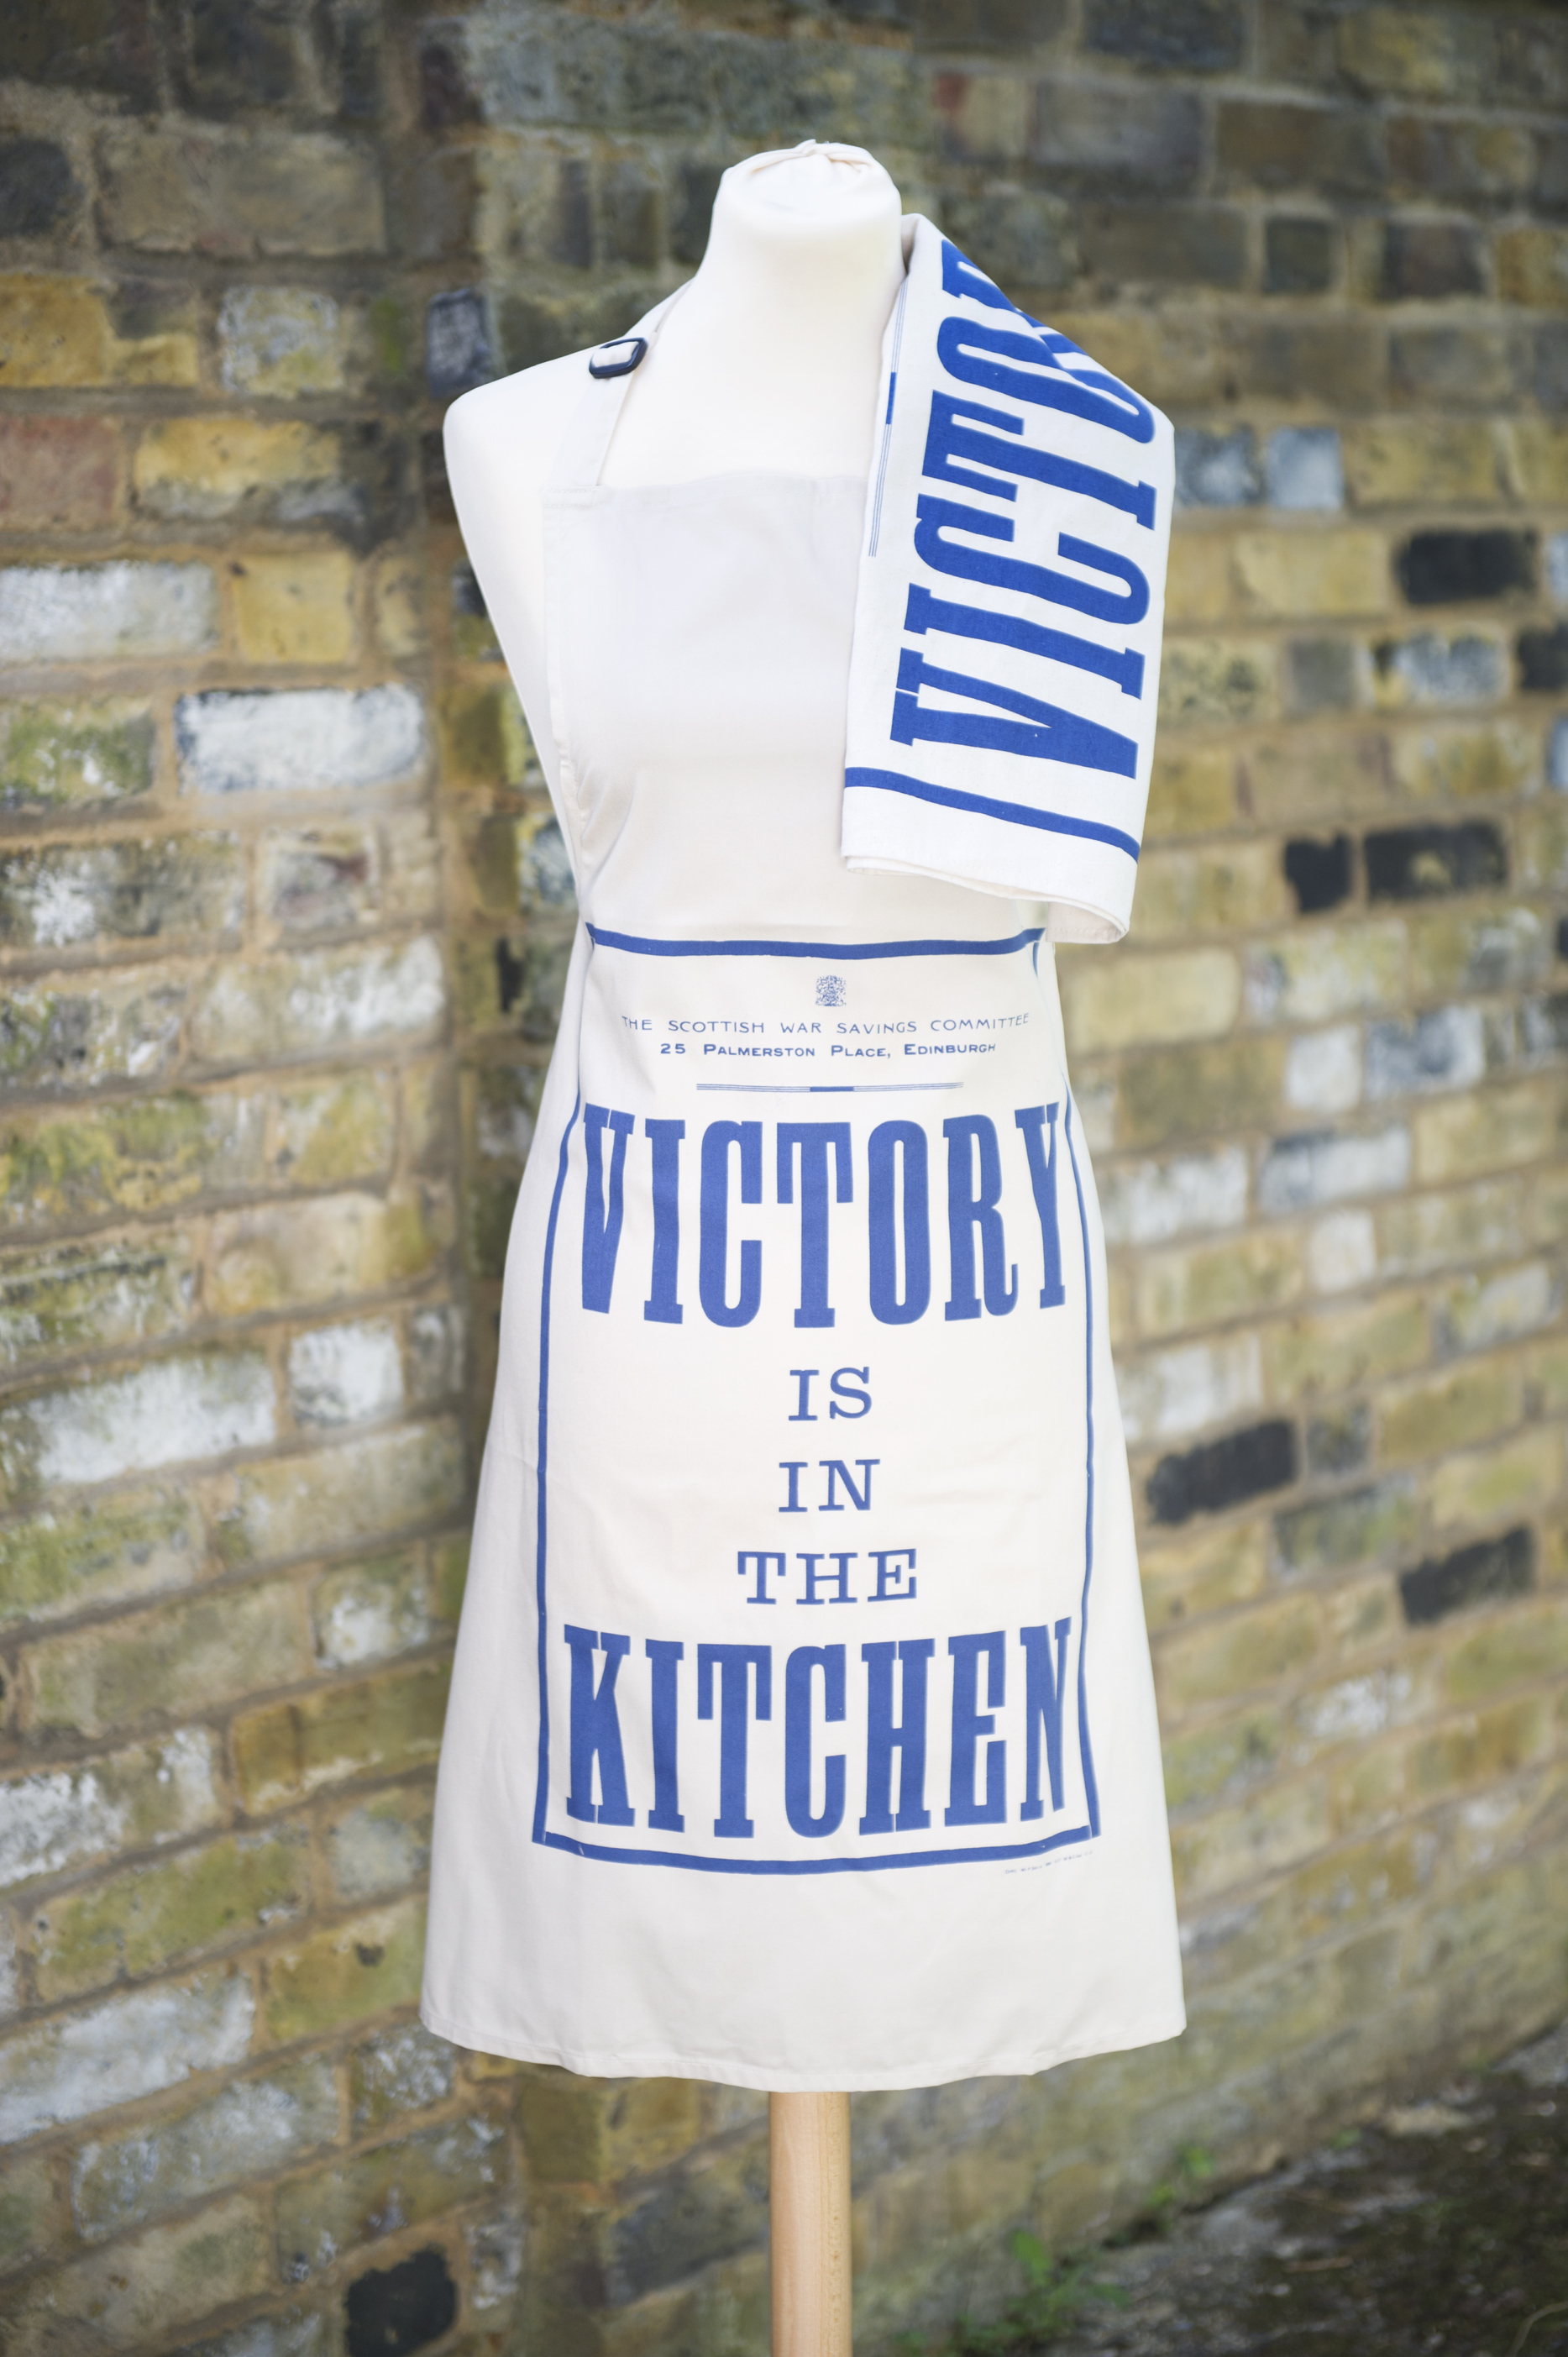 Victory is in the Kitchen Apron £12.00 www.iwmshop.org.uk